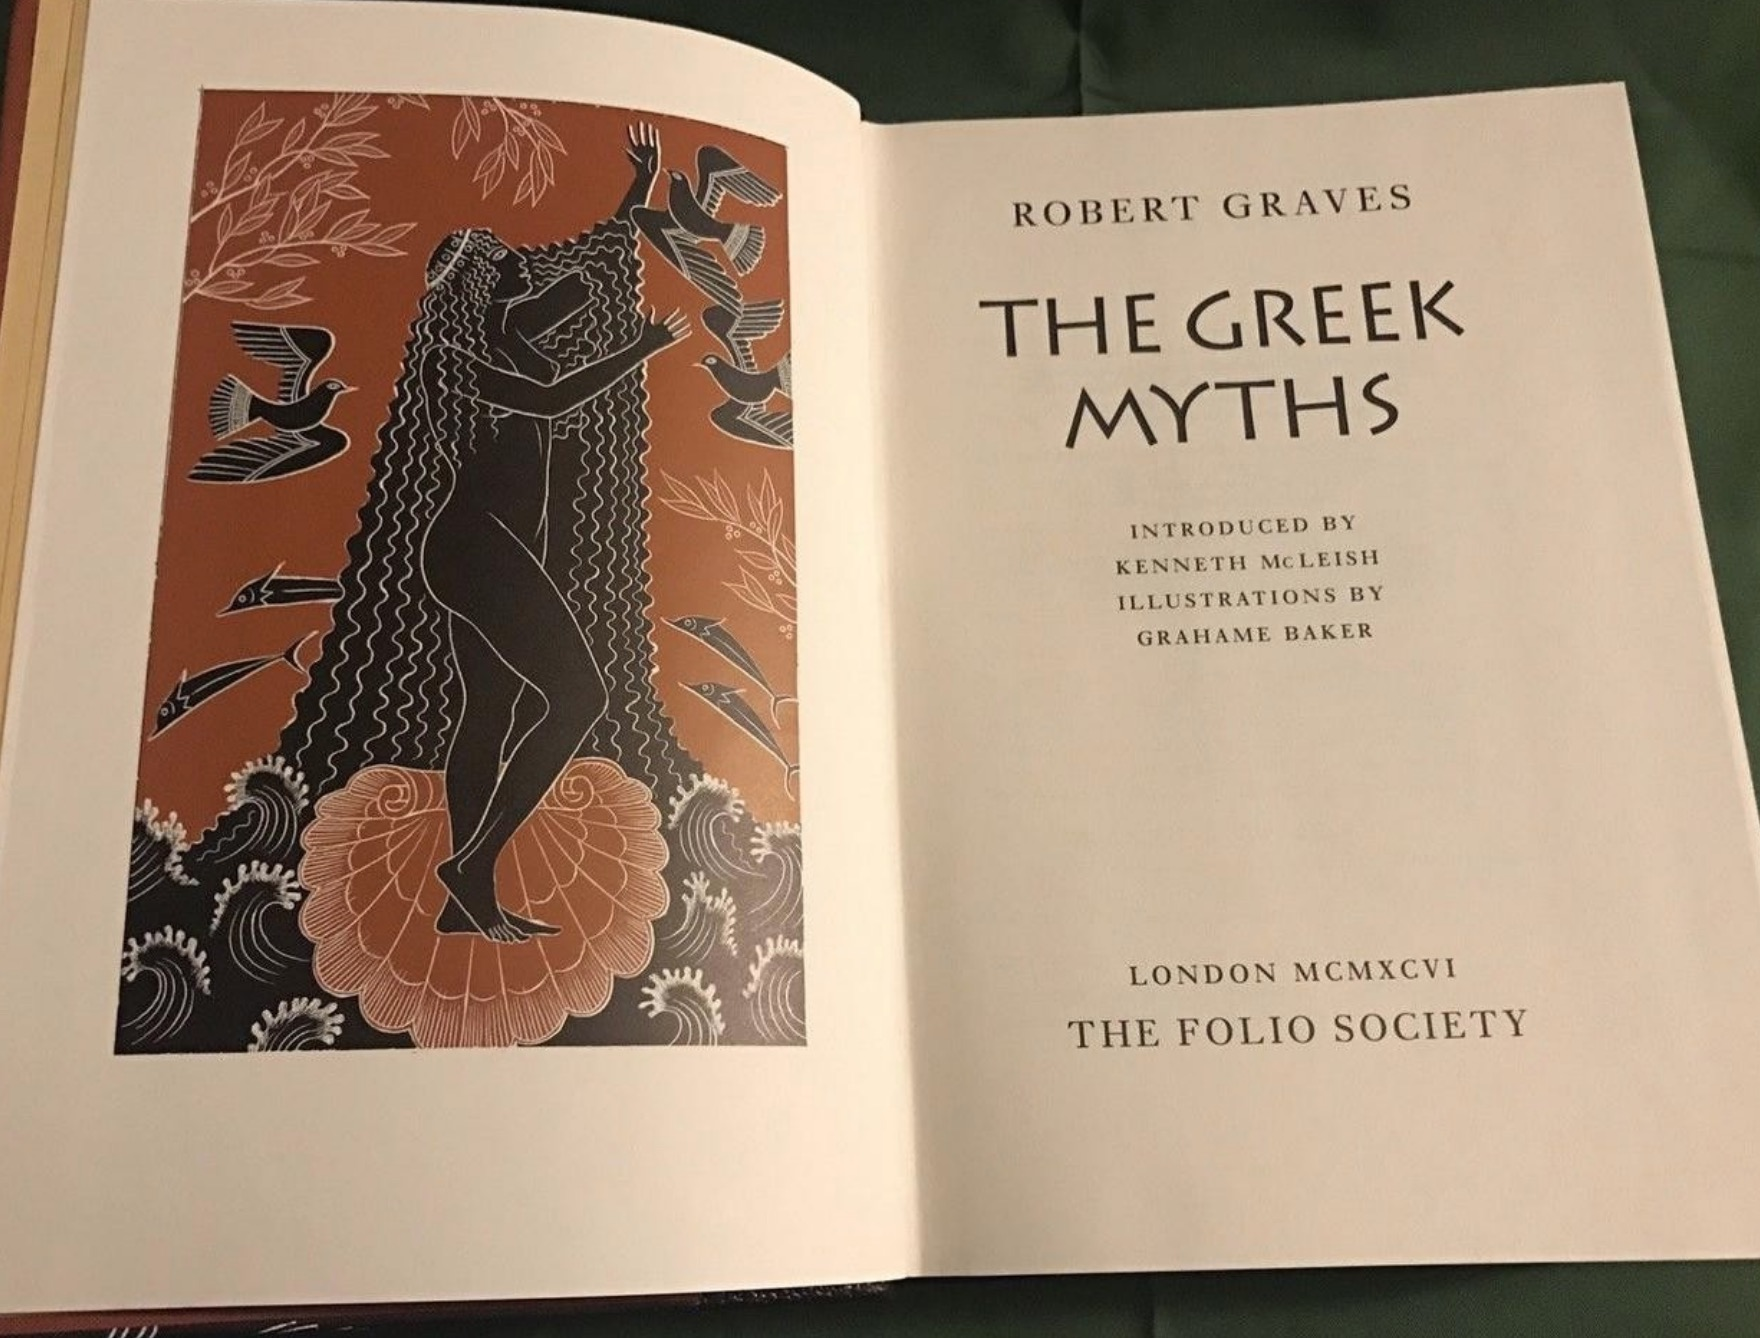 Illustration from FS Greek Myths – beautifulbooks.info